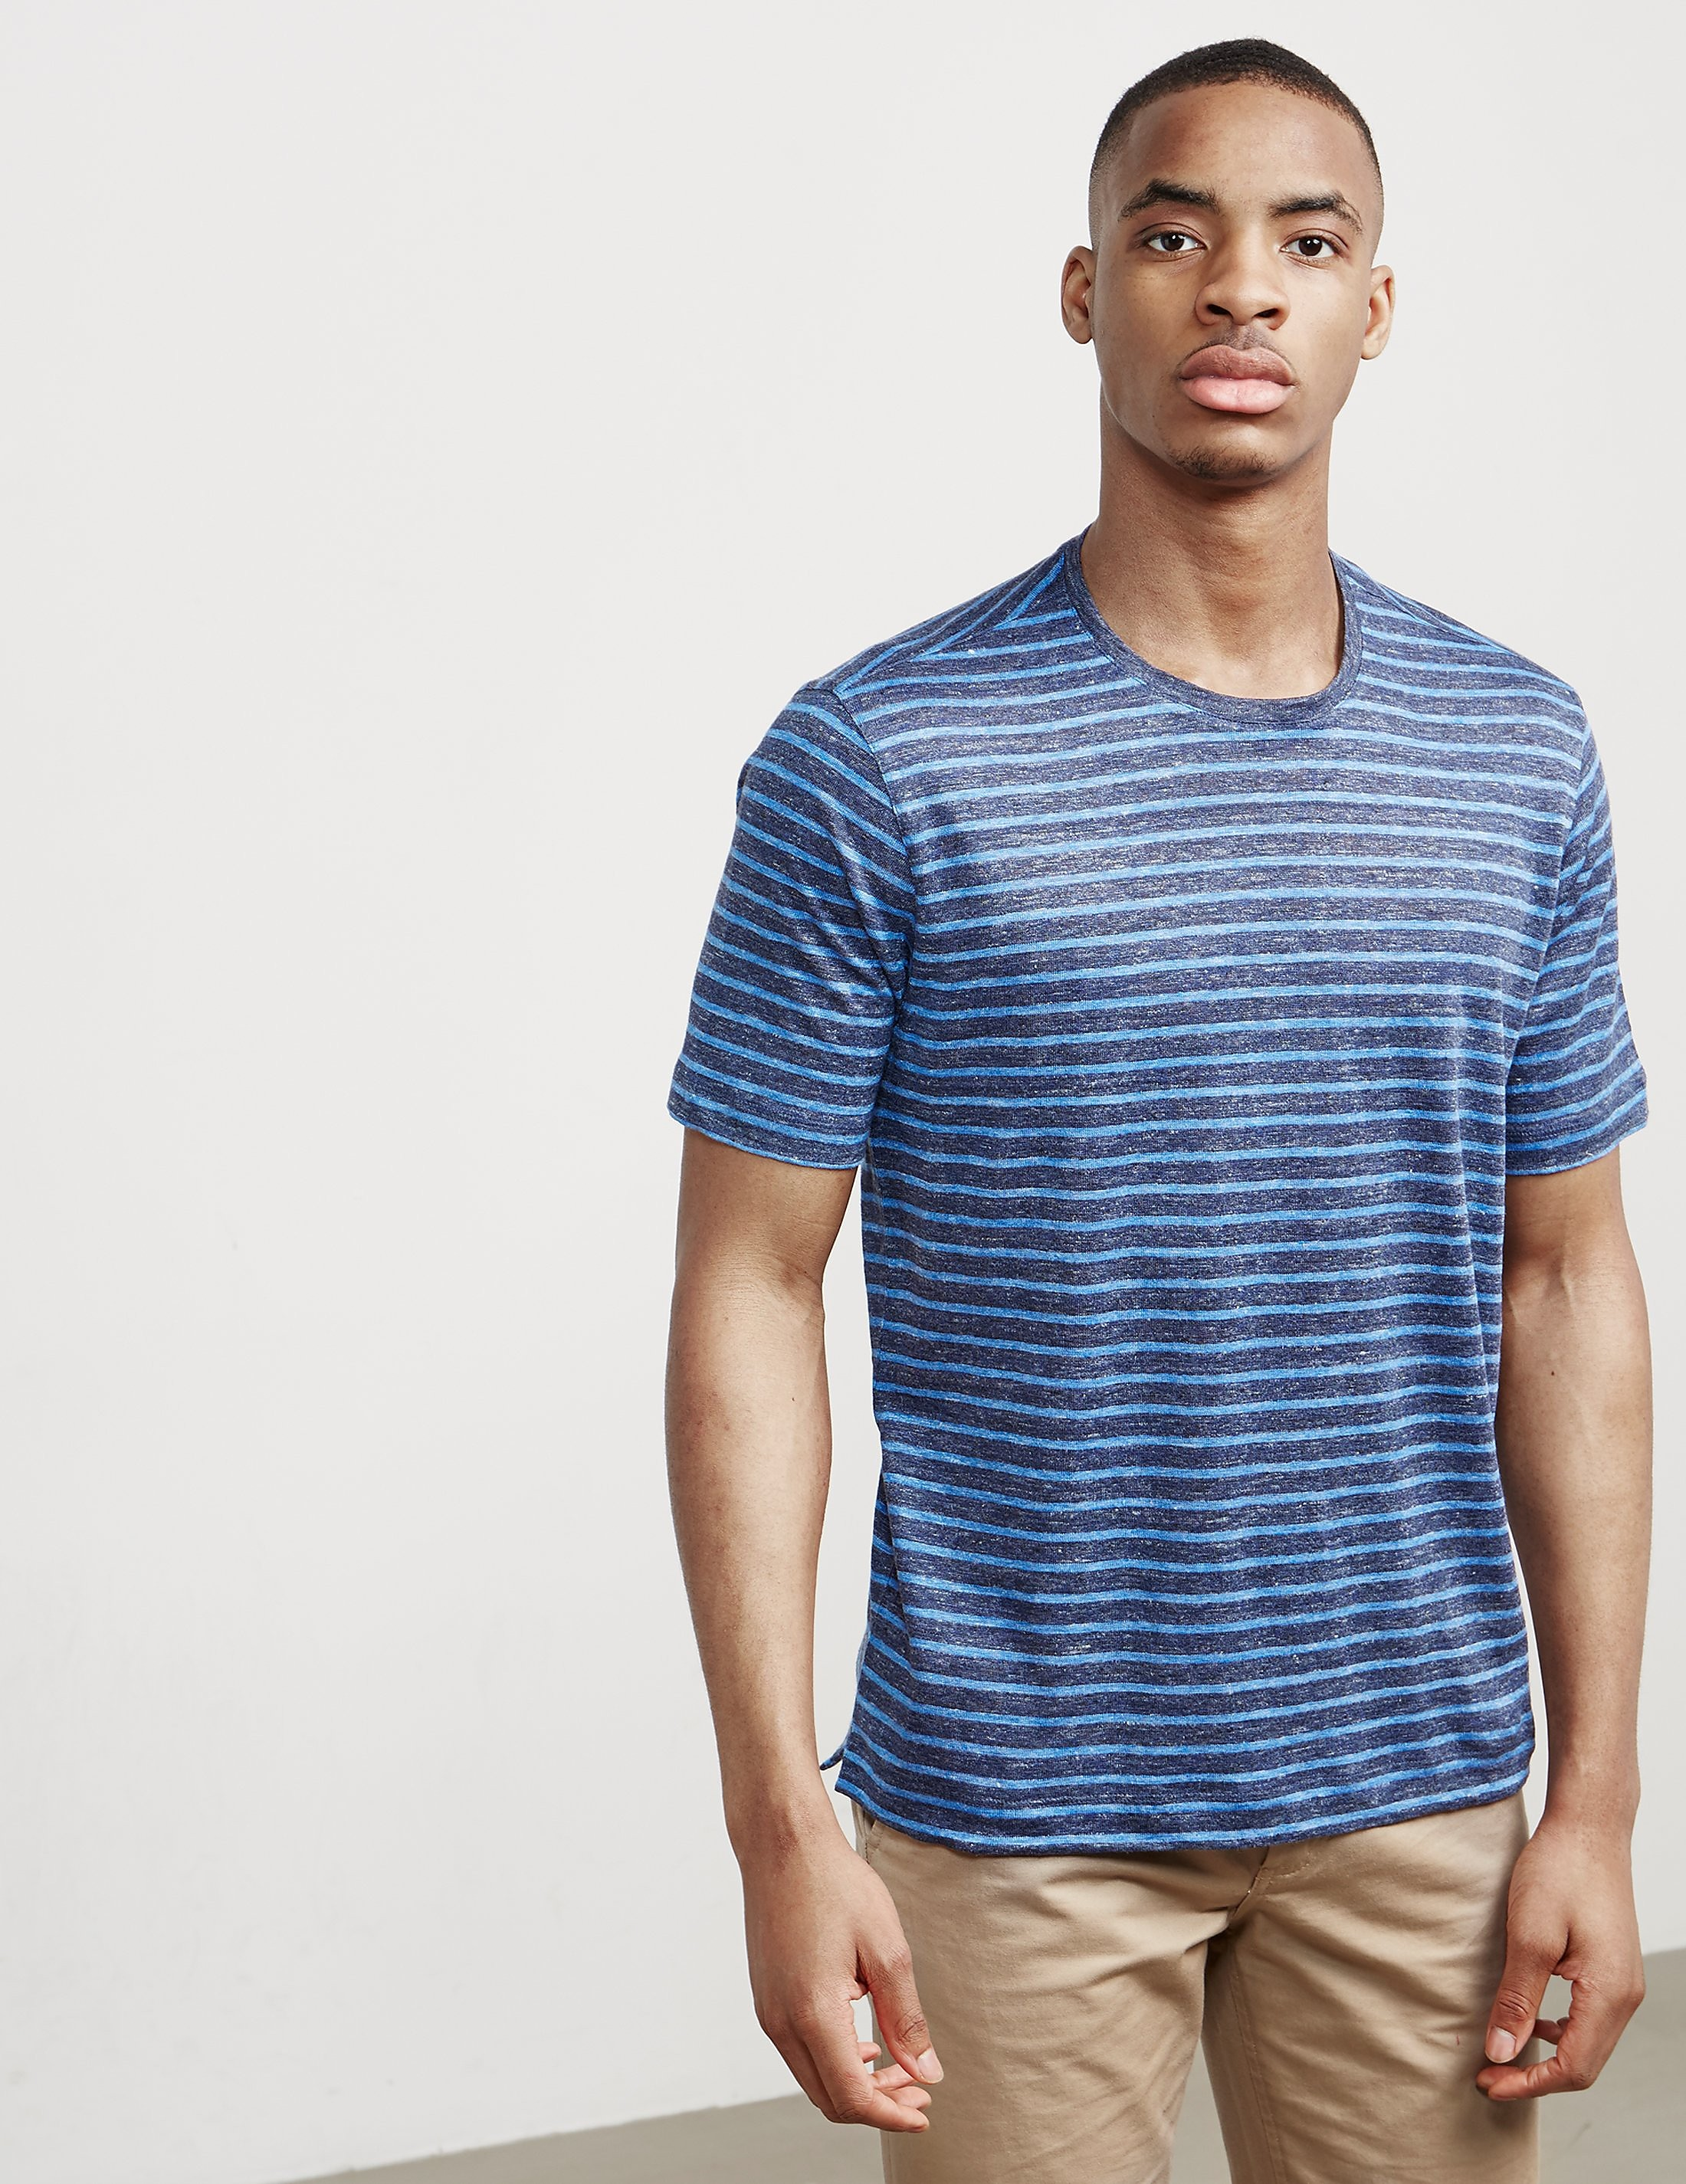 Z Zegna Linen Stripe Short Sleeve T-Shirt